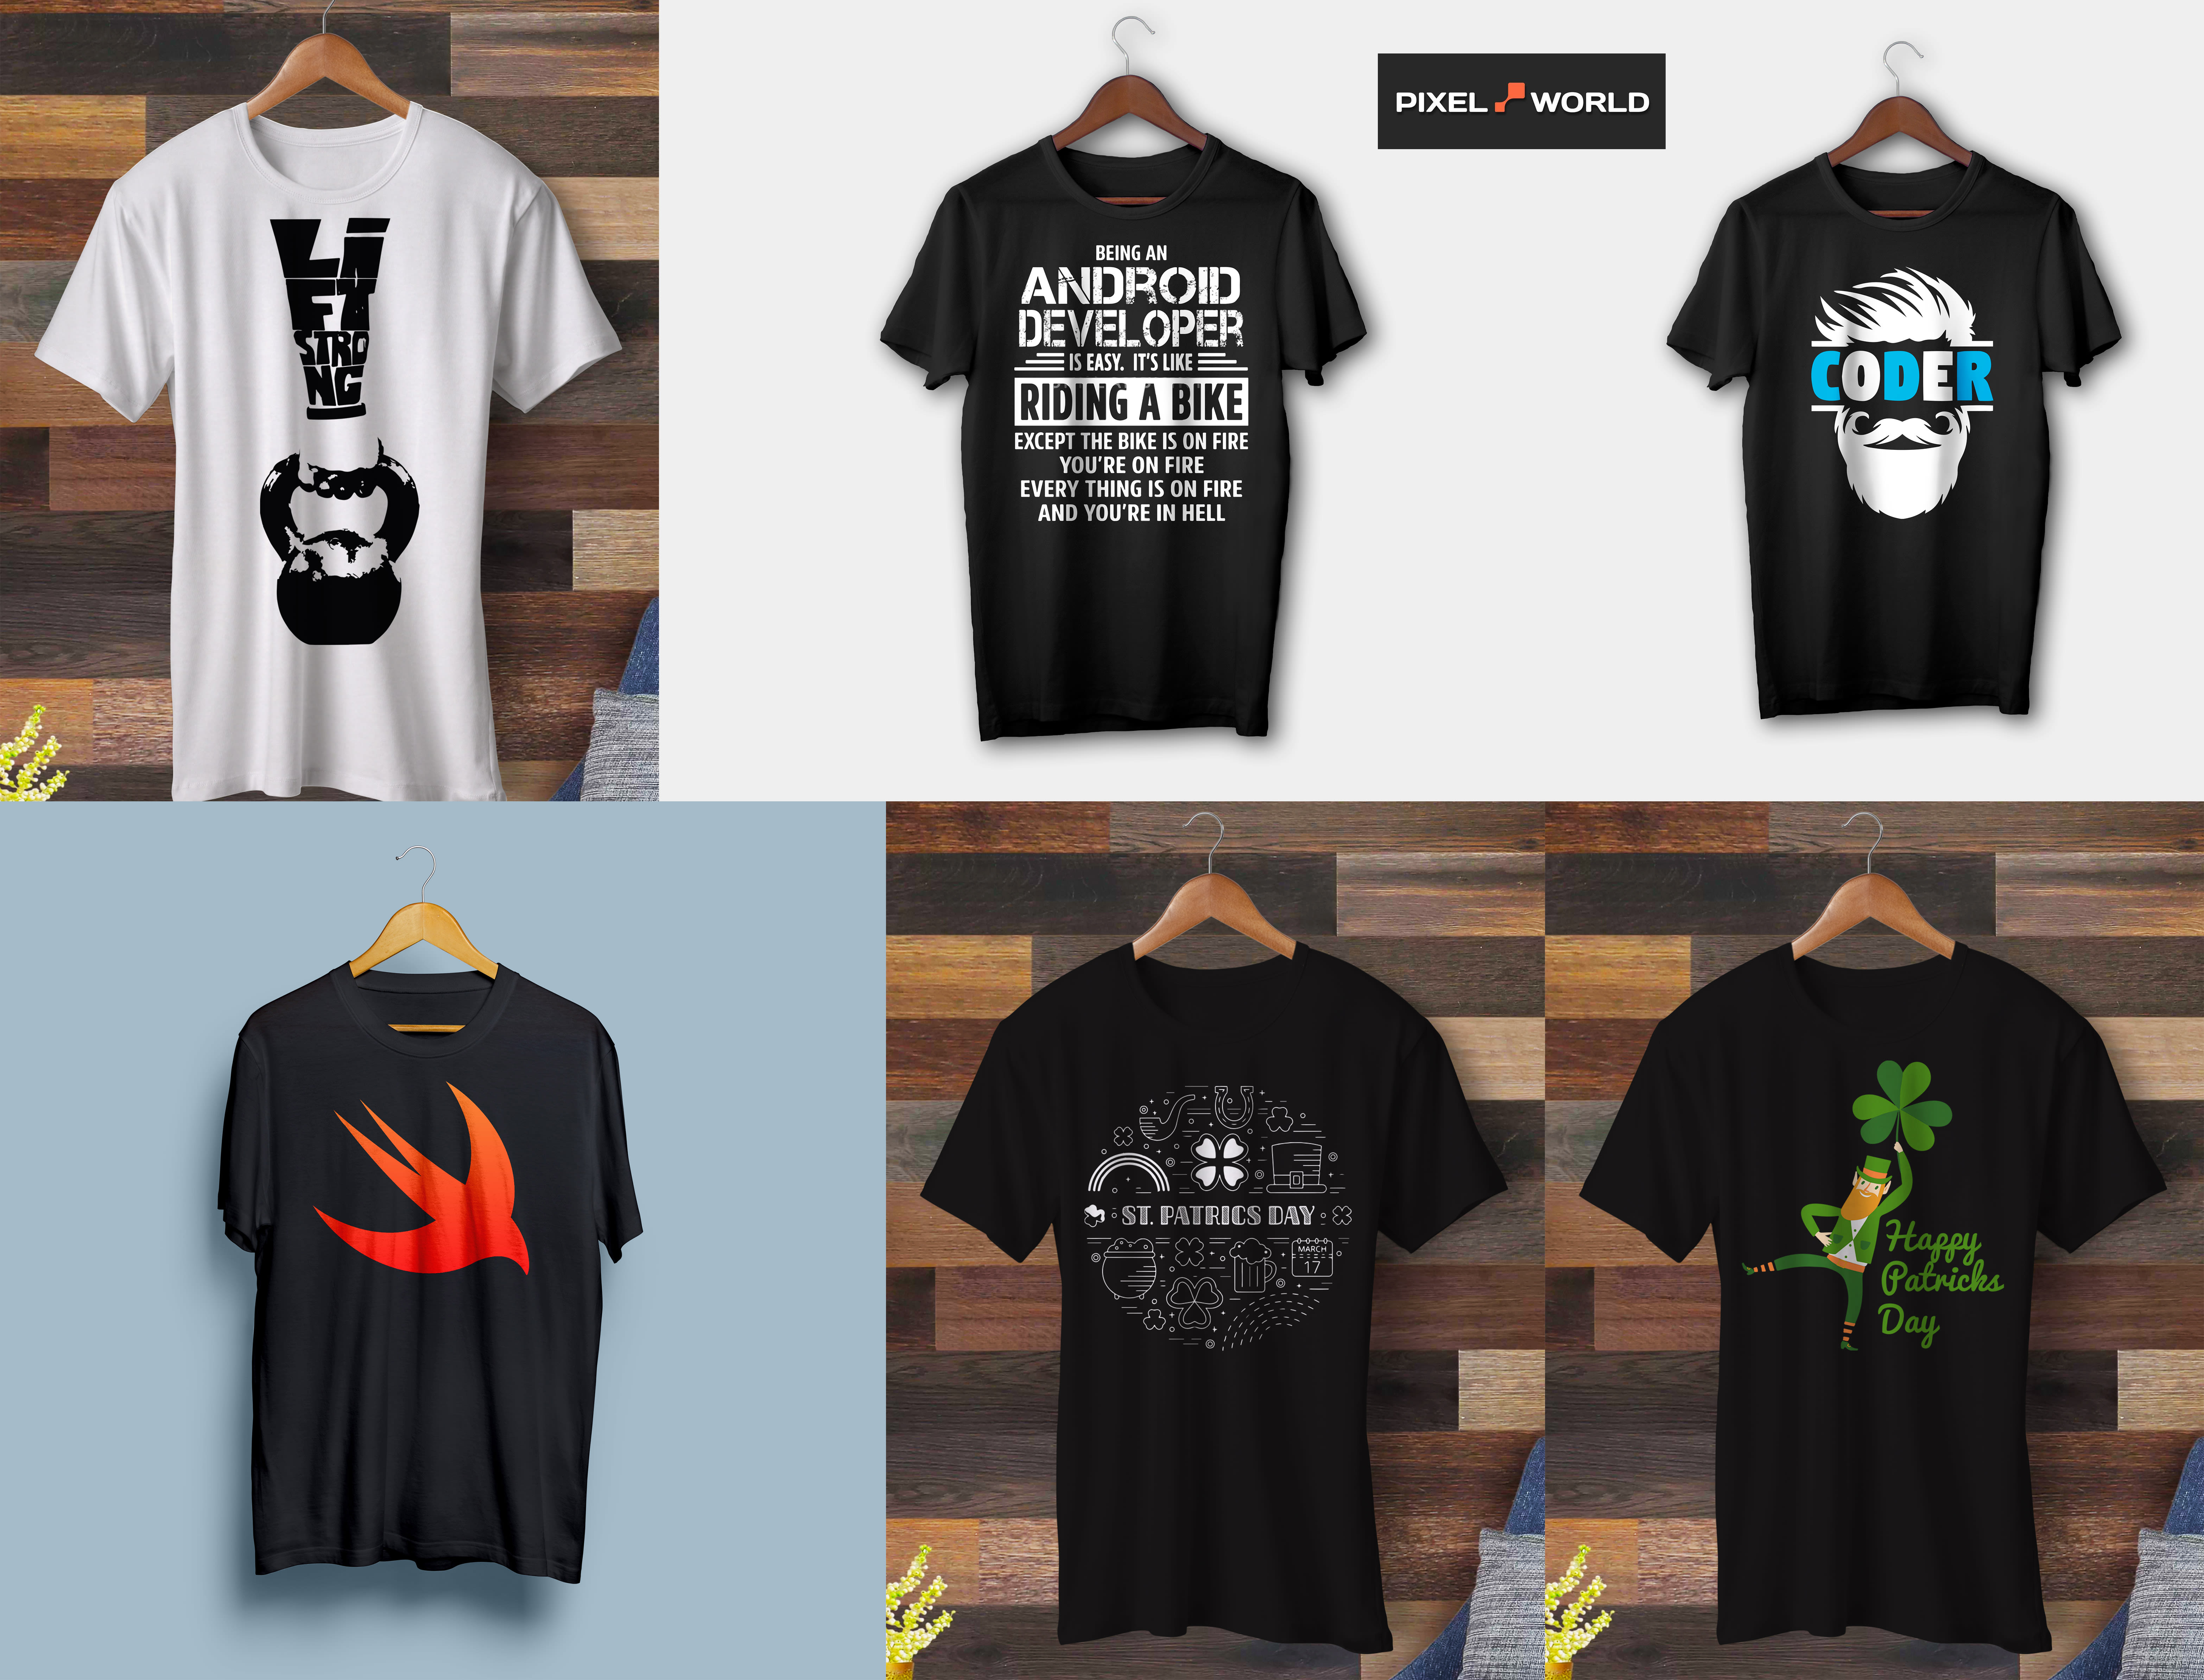 T Shirt Design Software Free Download For Android - raveitsafe